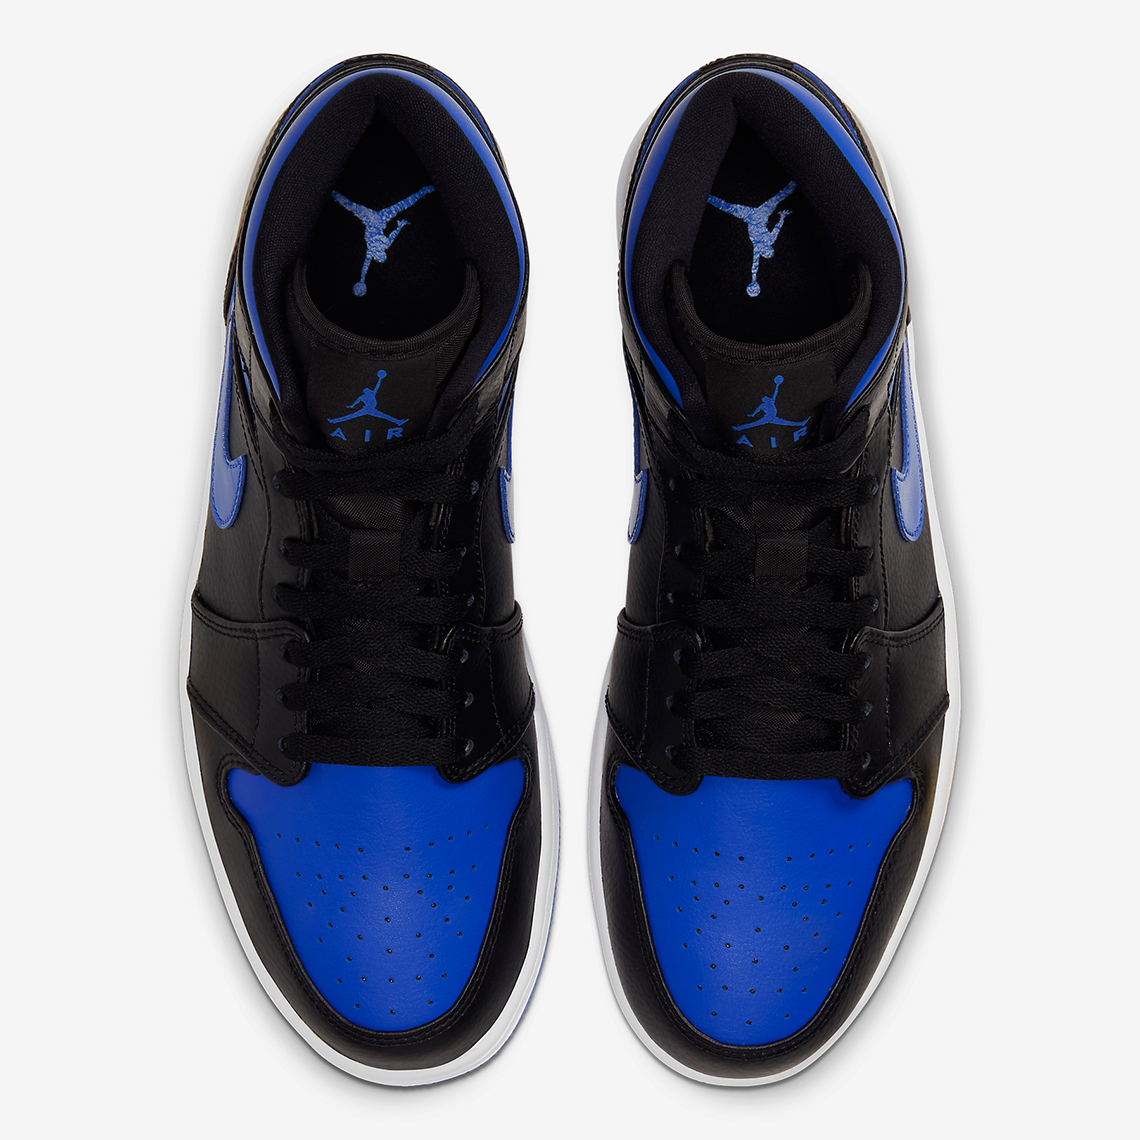 "Air Jordan 1 Mid Receives Infamous ""Royal"" Colorway: Official Photos"